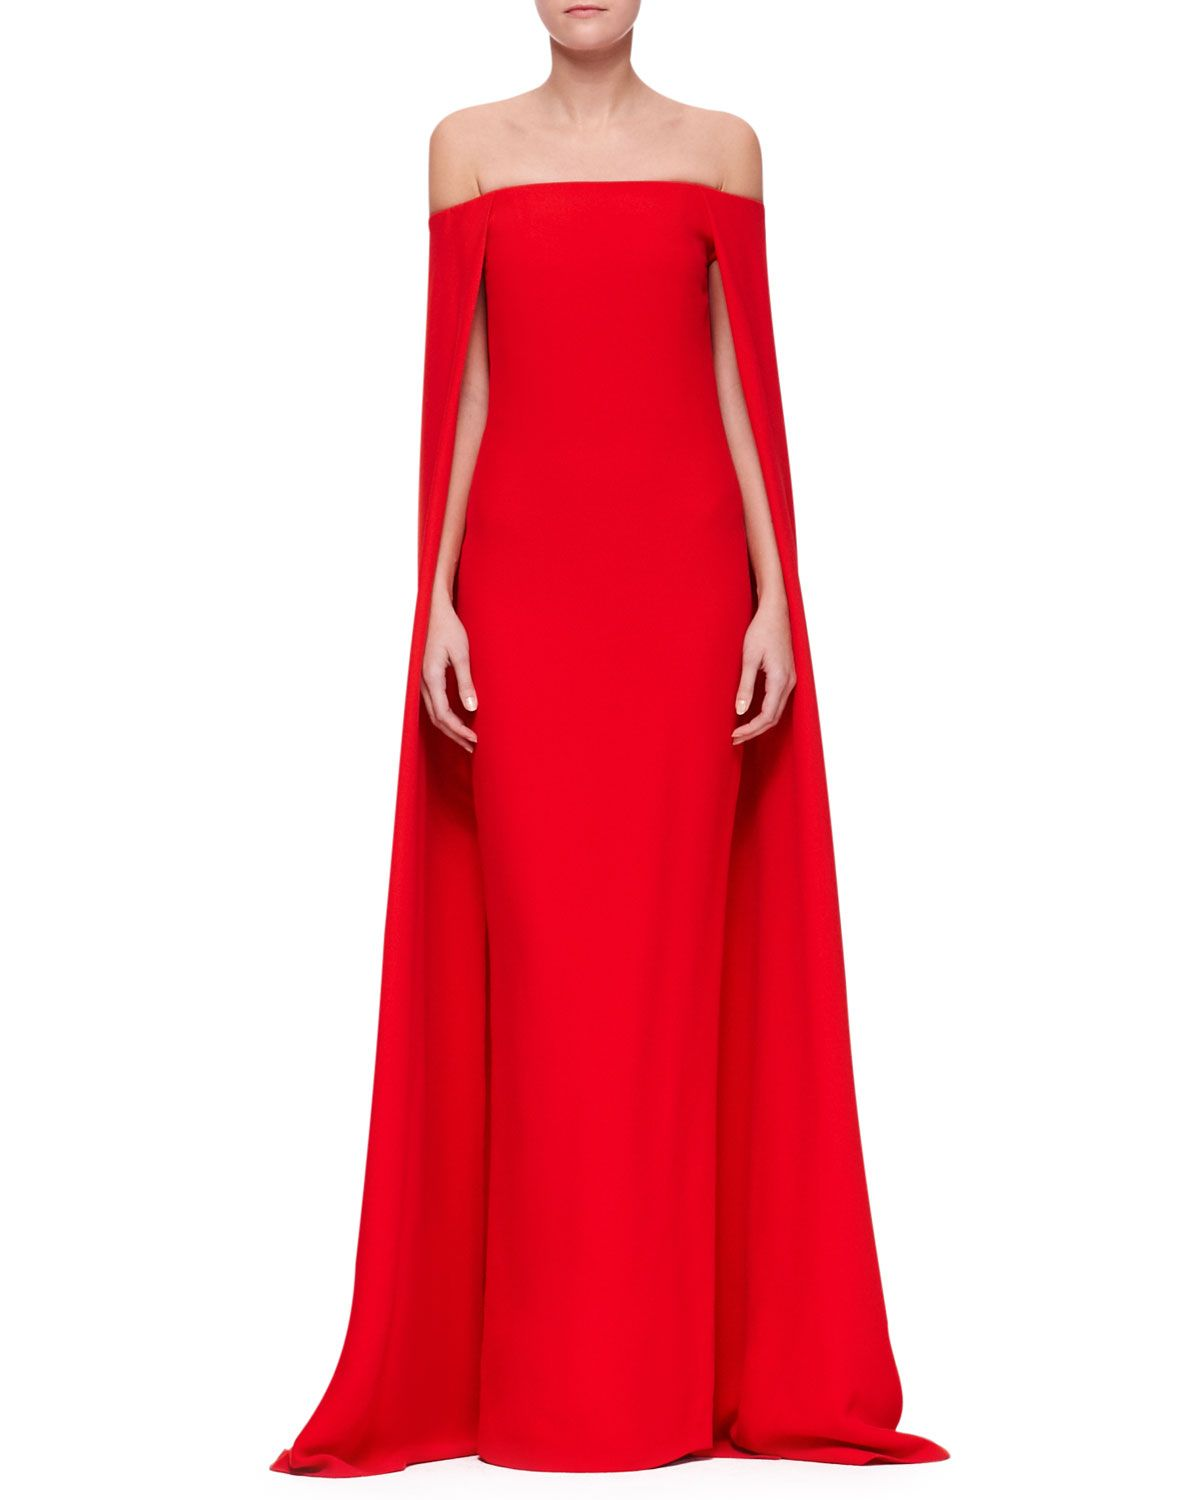 Ralph Lauren Collection Audrey Cape Evening Gown Neiman Marcus